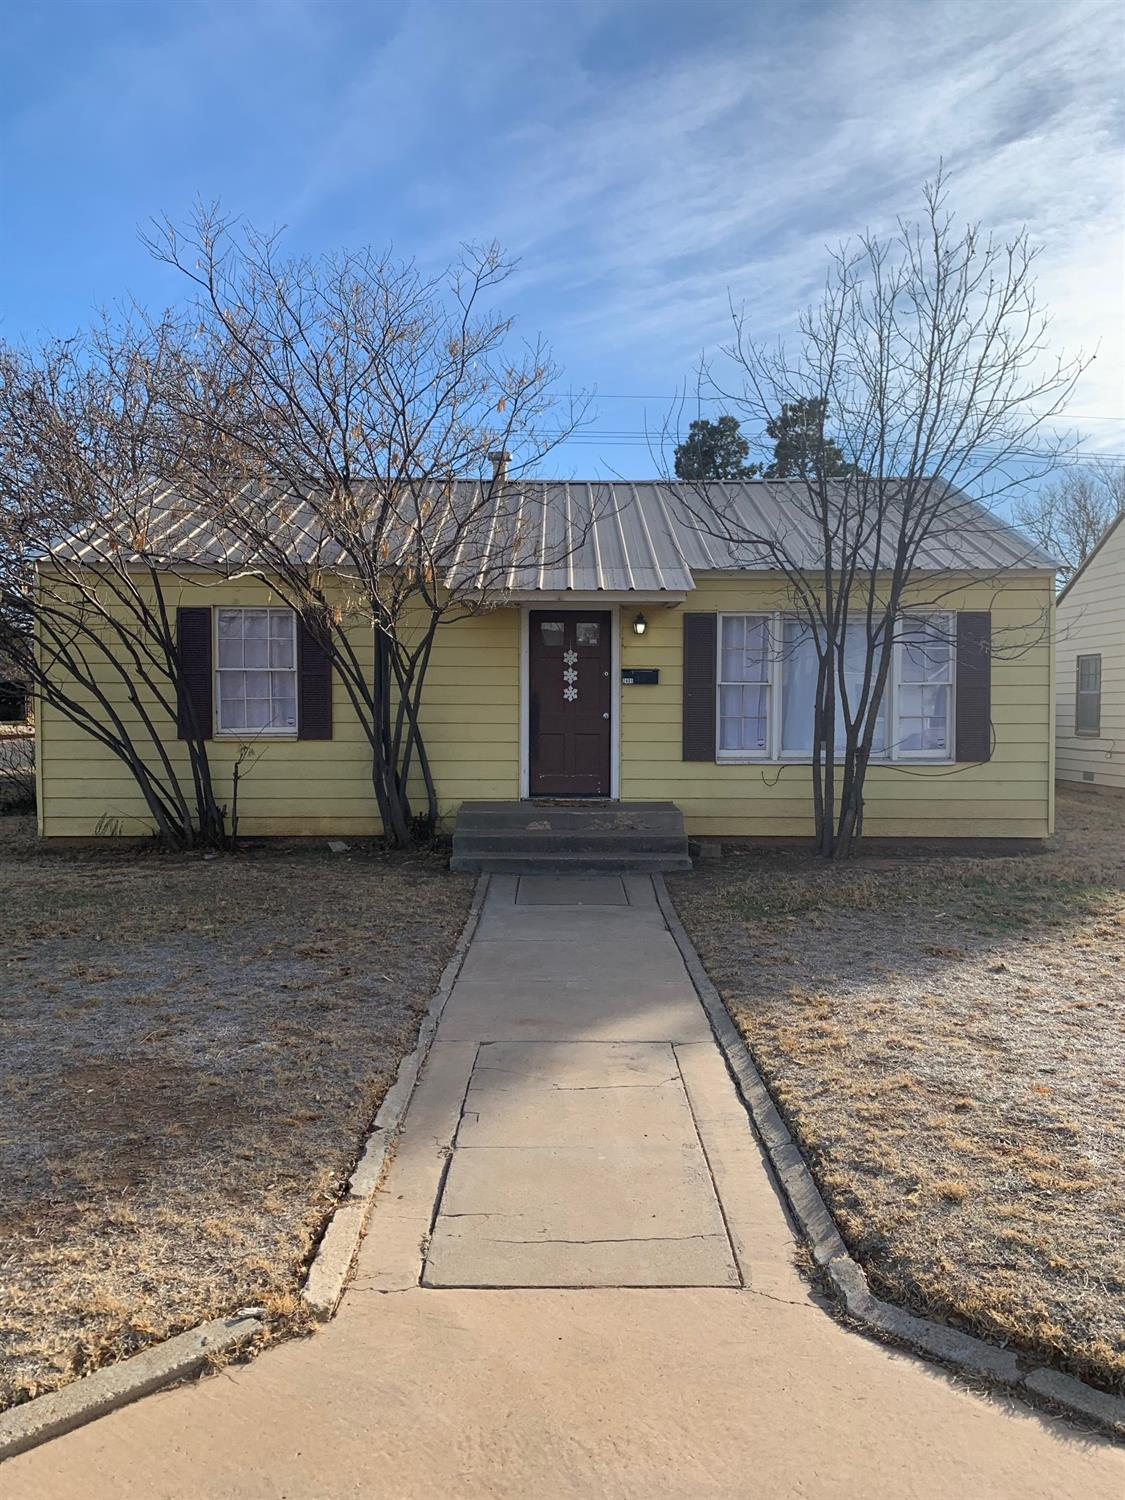 3 bed 1 bath renting for $875 through 6/30/2022